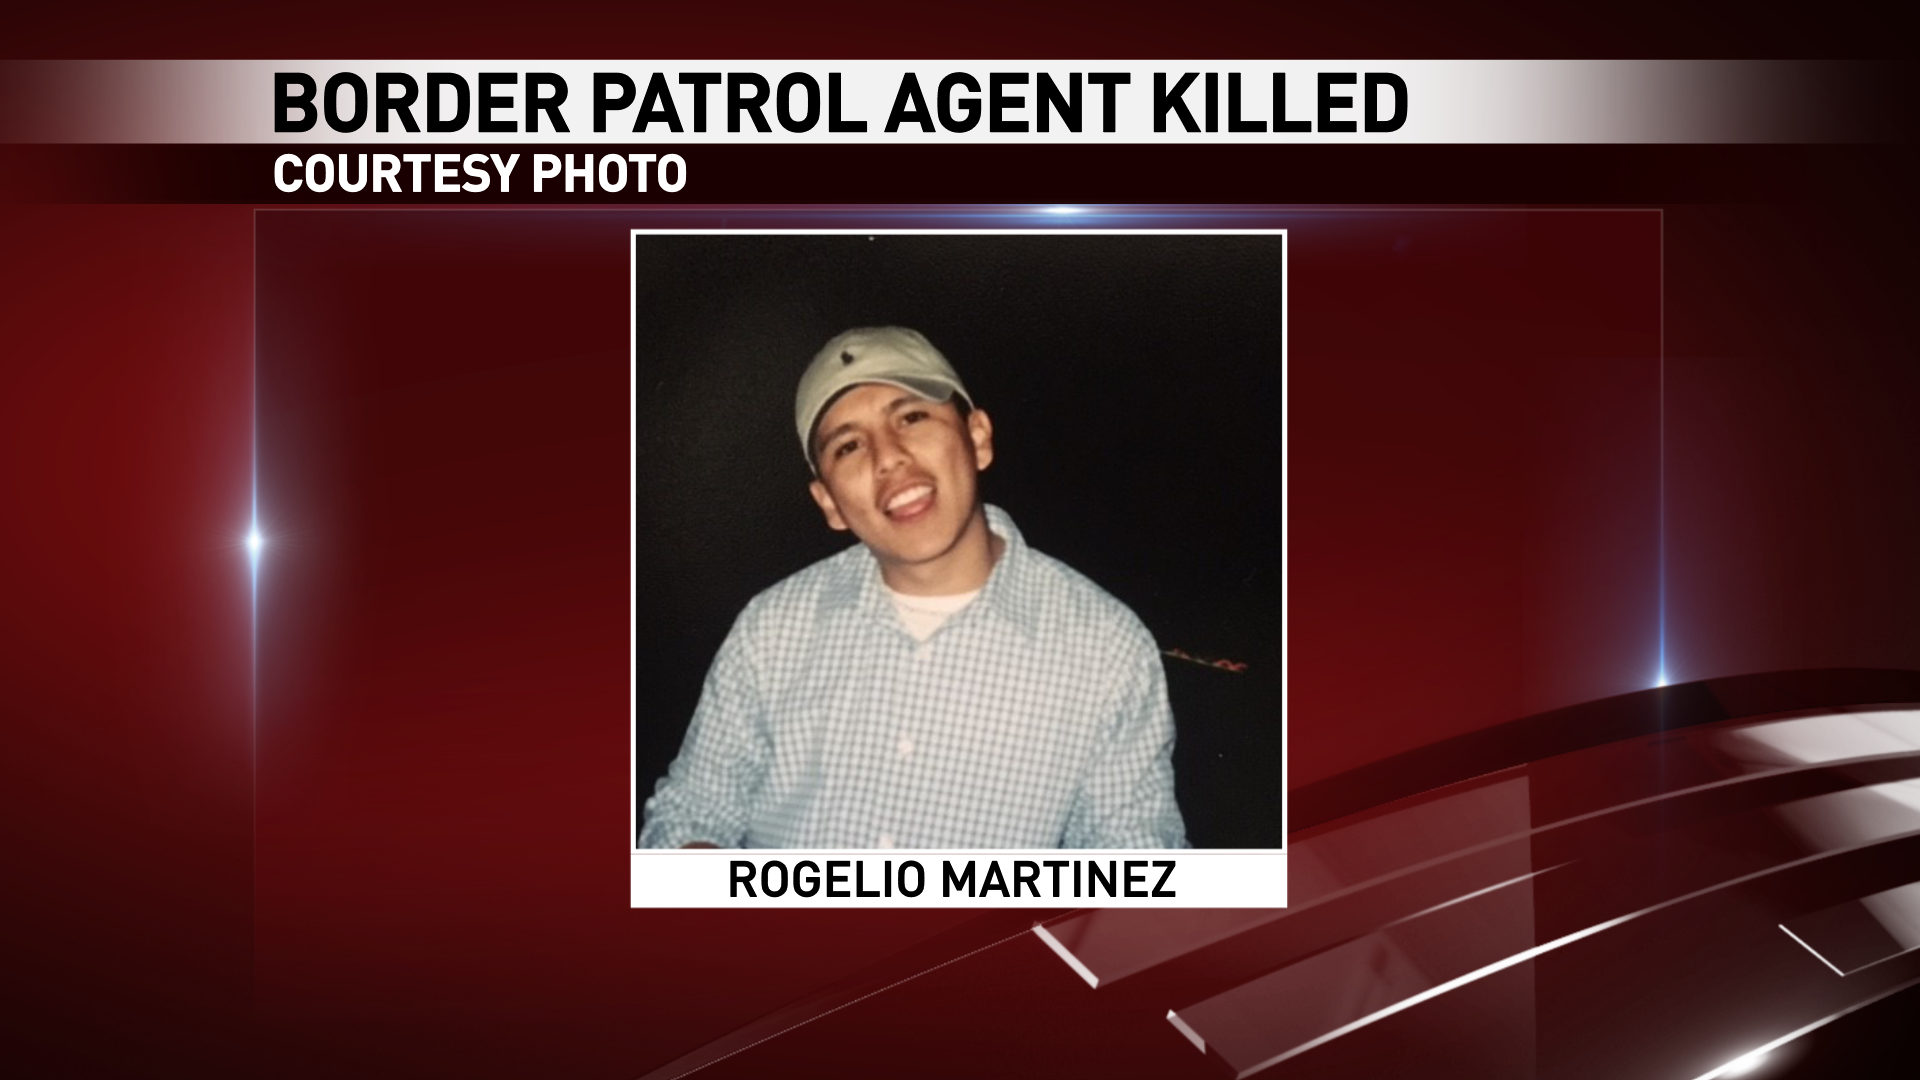 Rogelio Martinez of El Paso was killed in an incident while on duty near Van Horn, Texas Sunday, Nov. 19, 2017. (Courtesy photo)